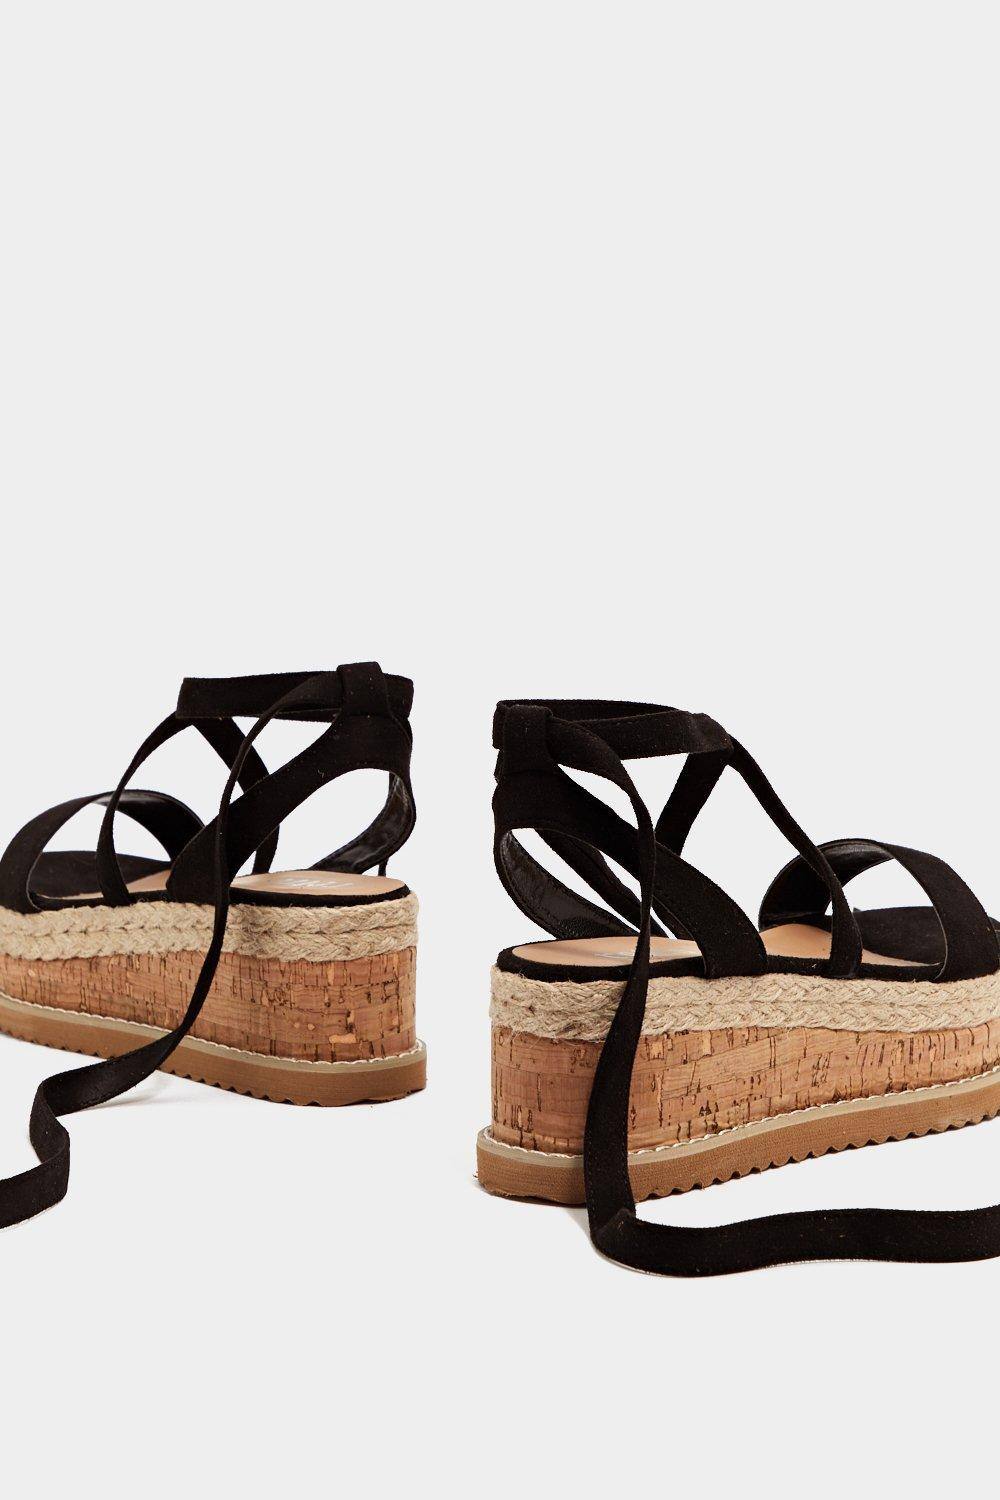 5b04da3e4 Womens Black Enough with the Cork Platform Sandal.